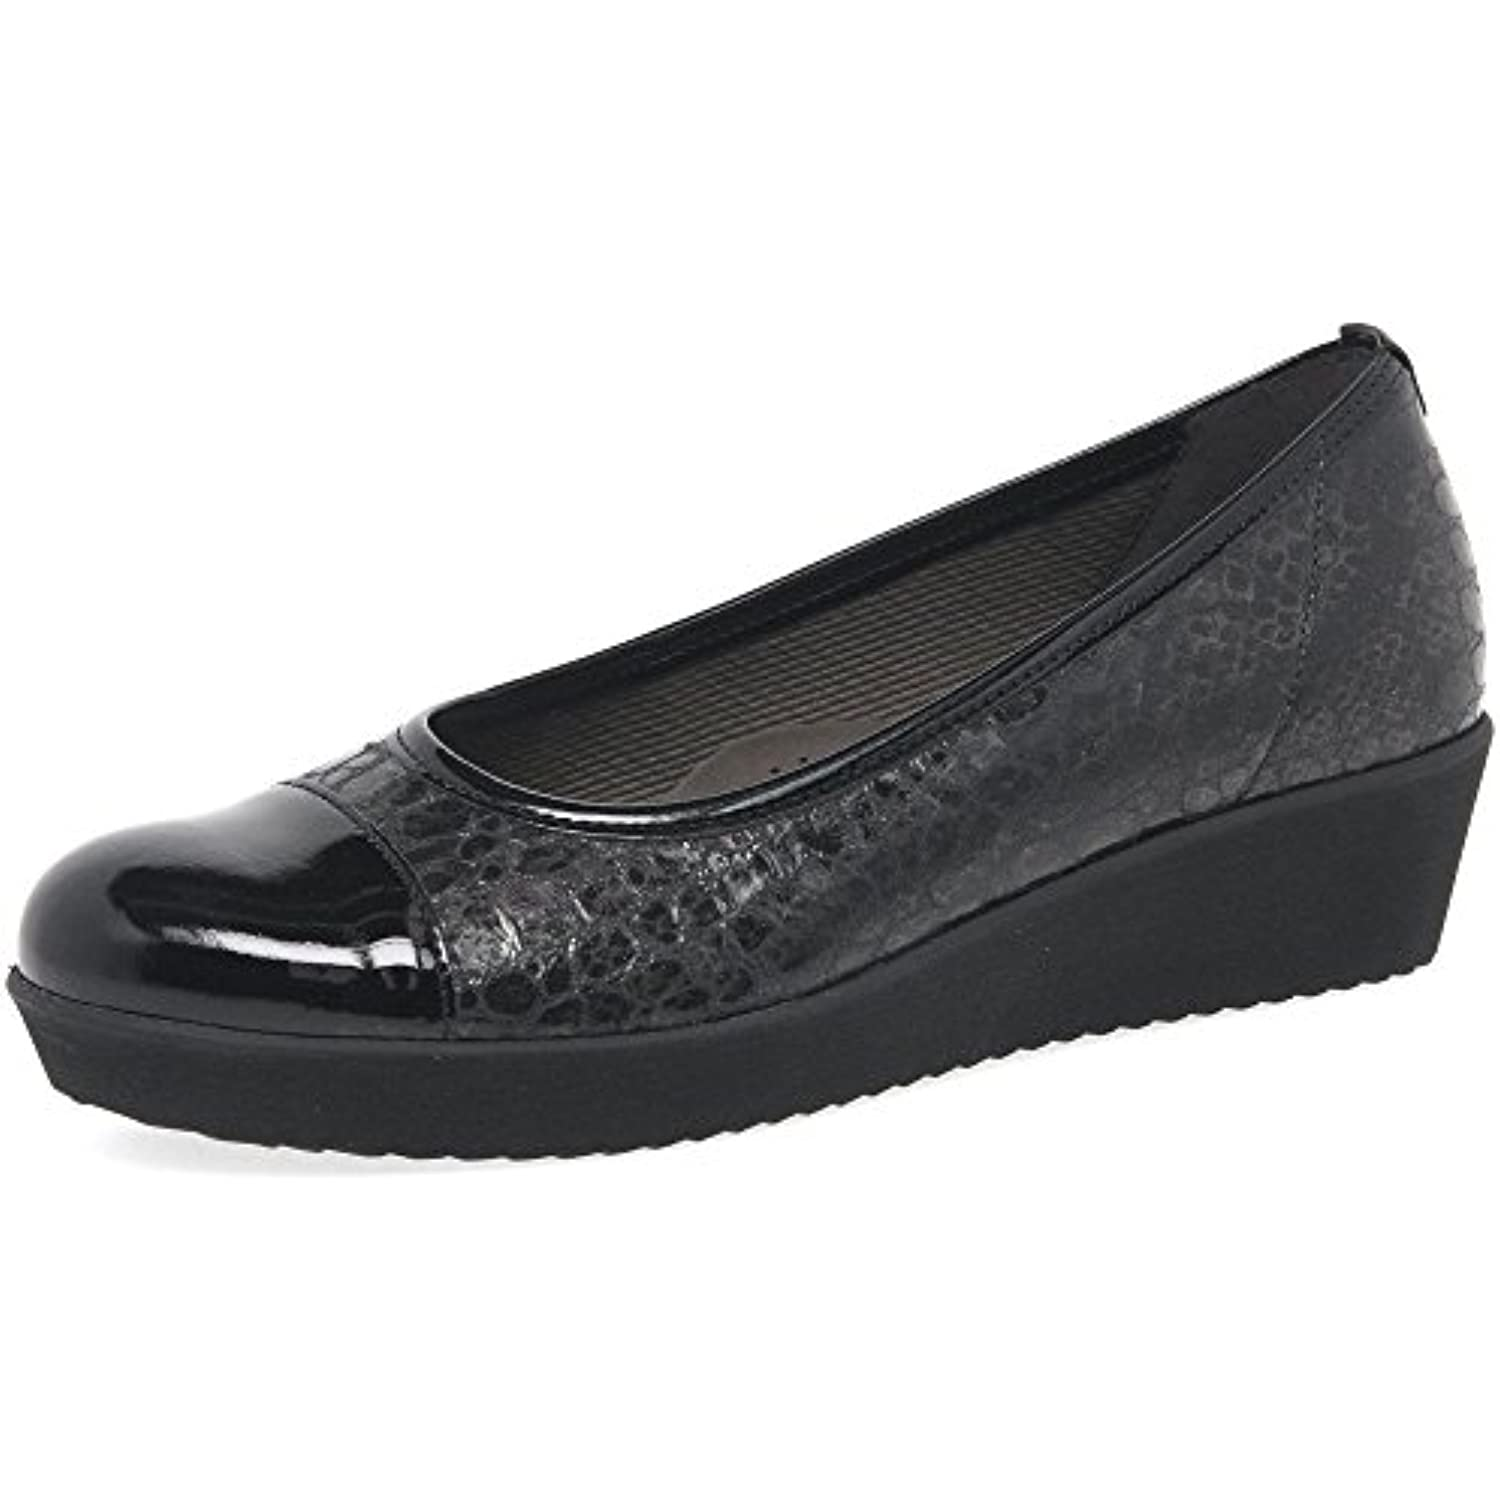 Wo Casual Gabor Orient Feuillet ShoesB07dhnsfdr 8nwy0mNvO